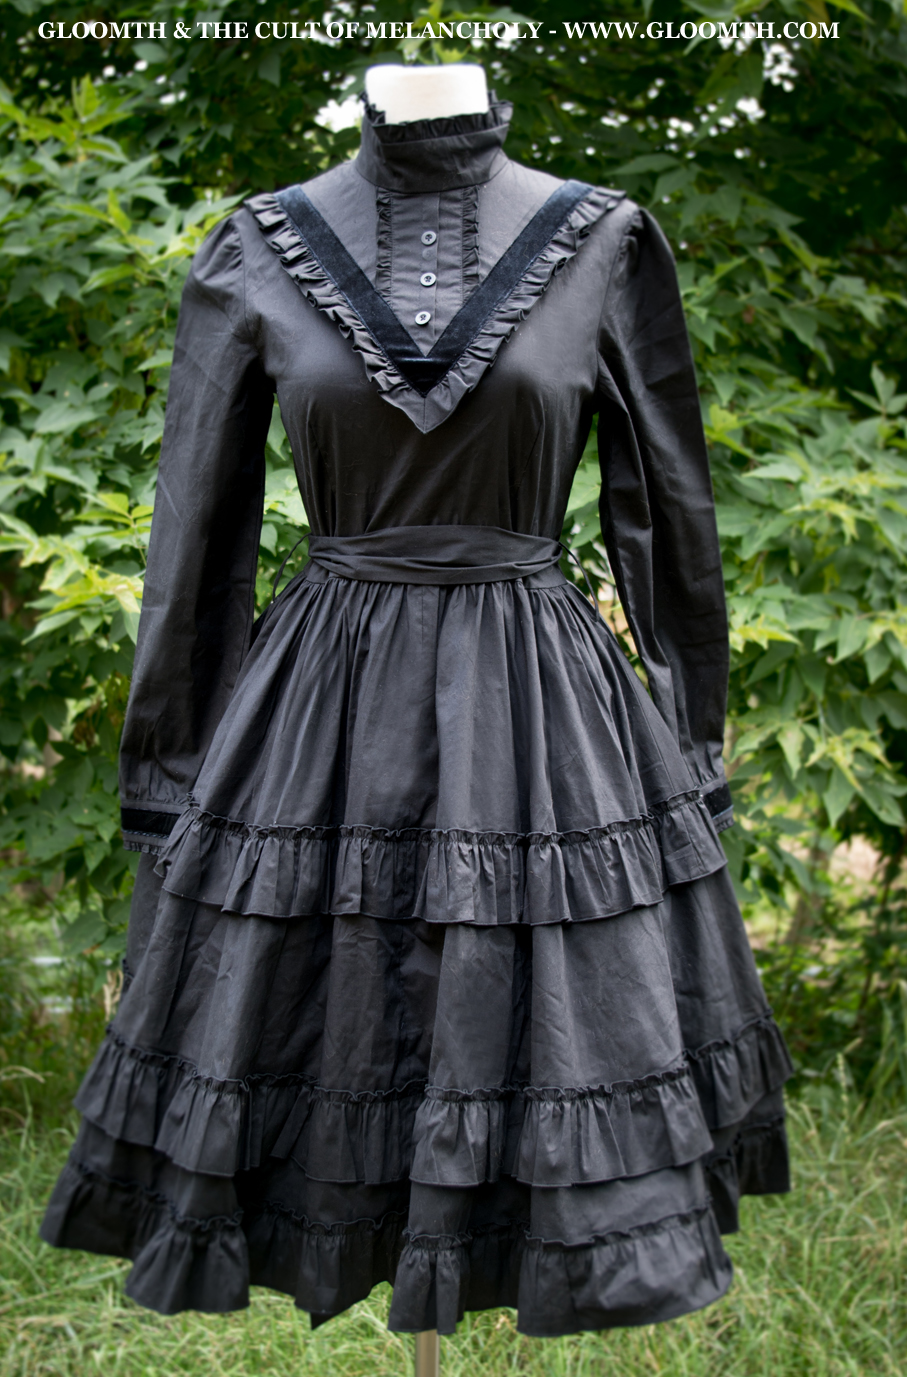 617c841a33 Victoria Victorian Mourning Dress With Velvet Trim Gloomth